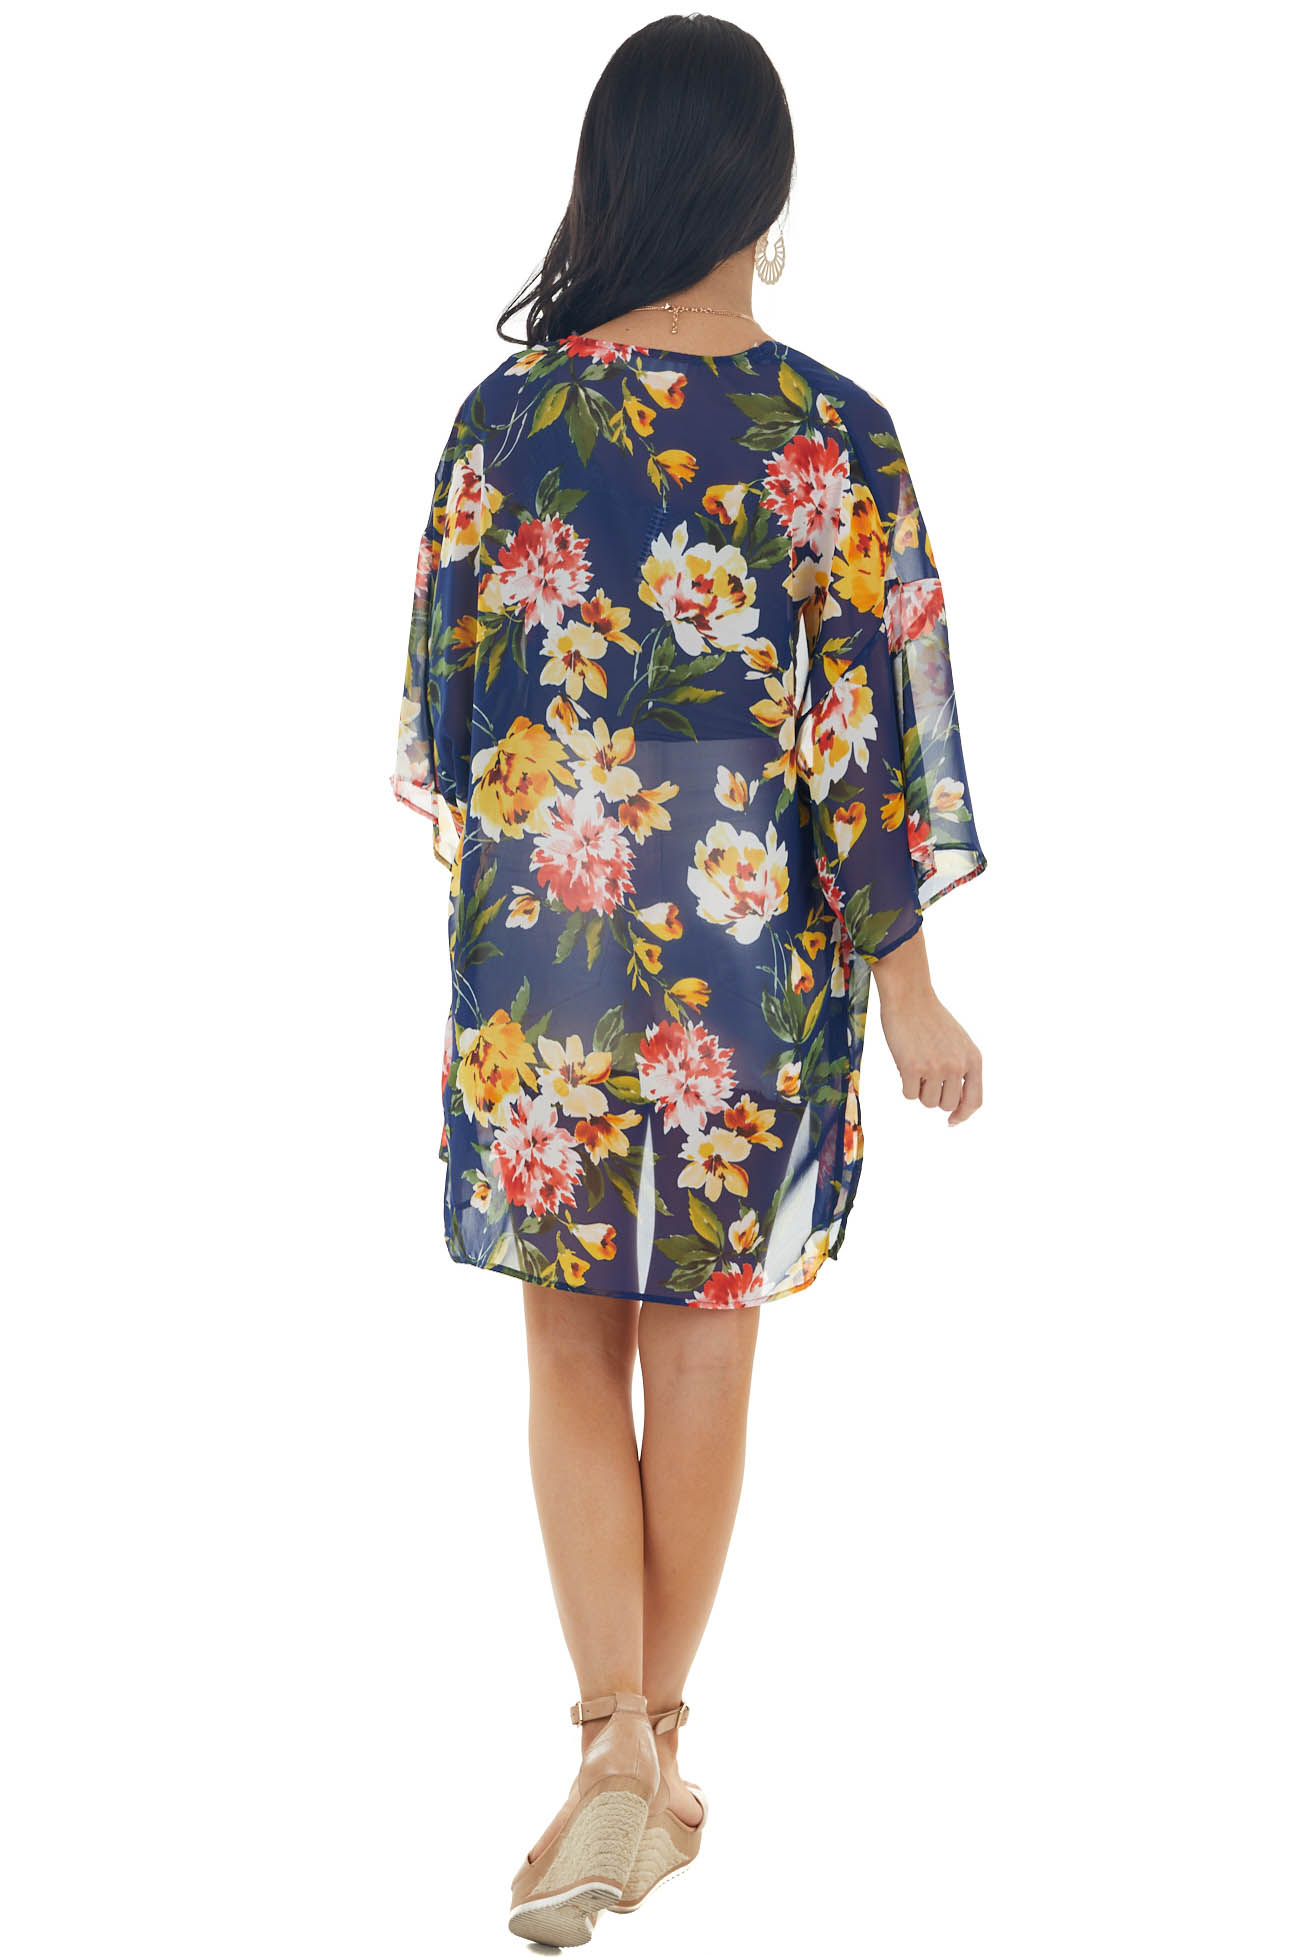 Catalina Blue Floral Print Lightweight Open Front Kimono